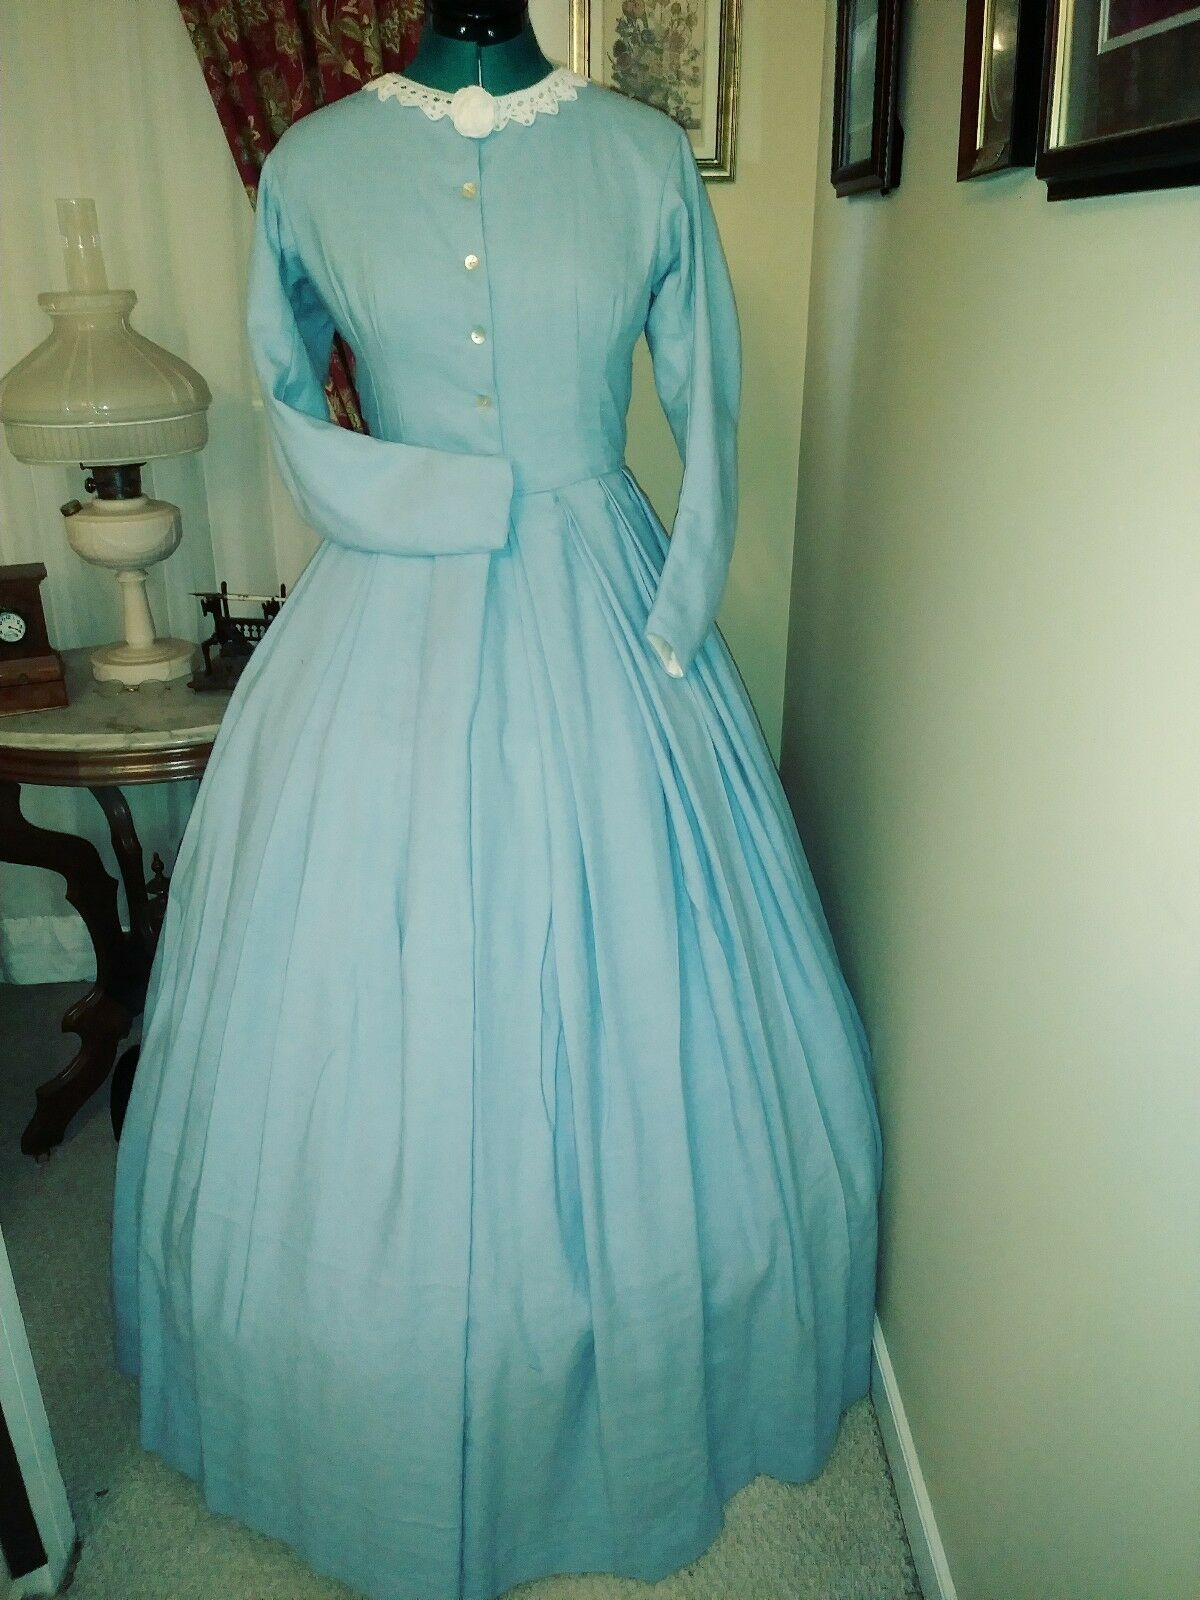 Civil War Reenactment Day Dress Size 10  Light Weight Powder Blue Linen